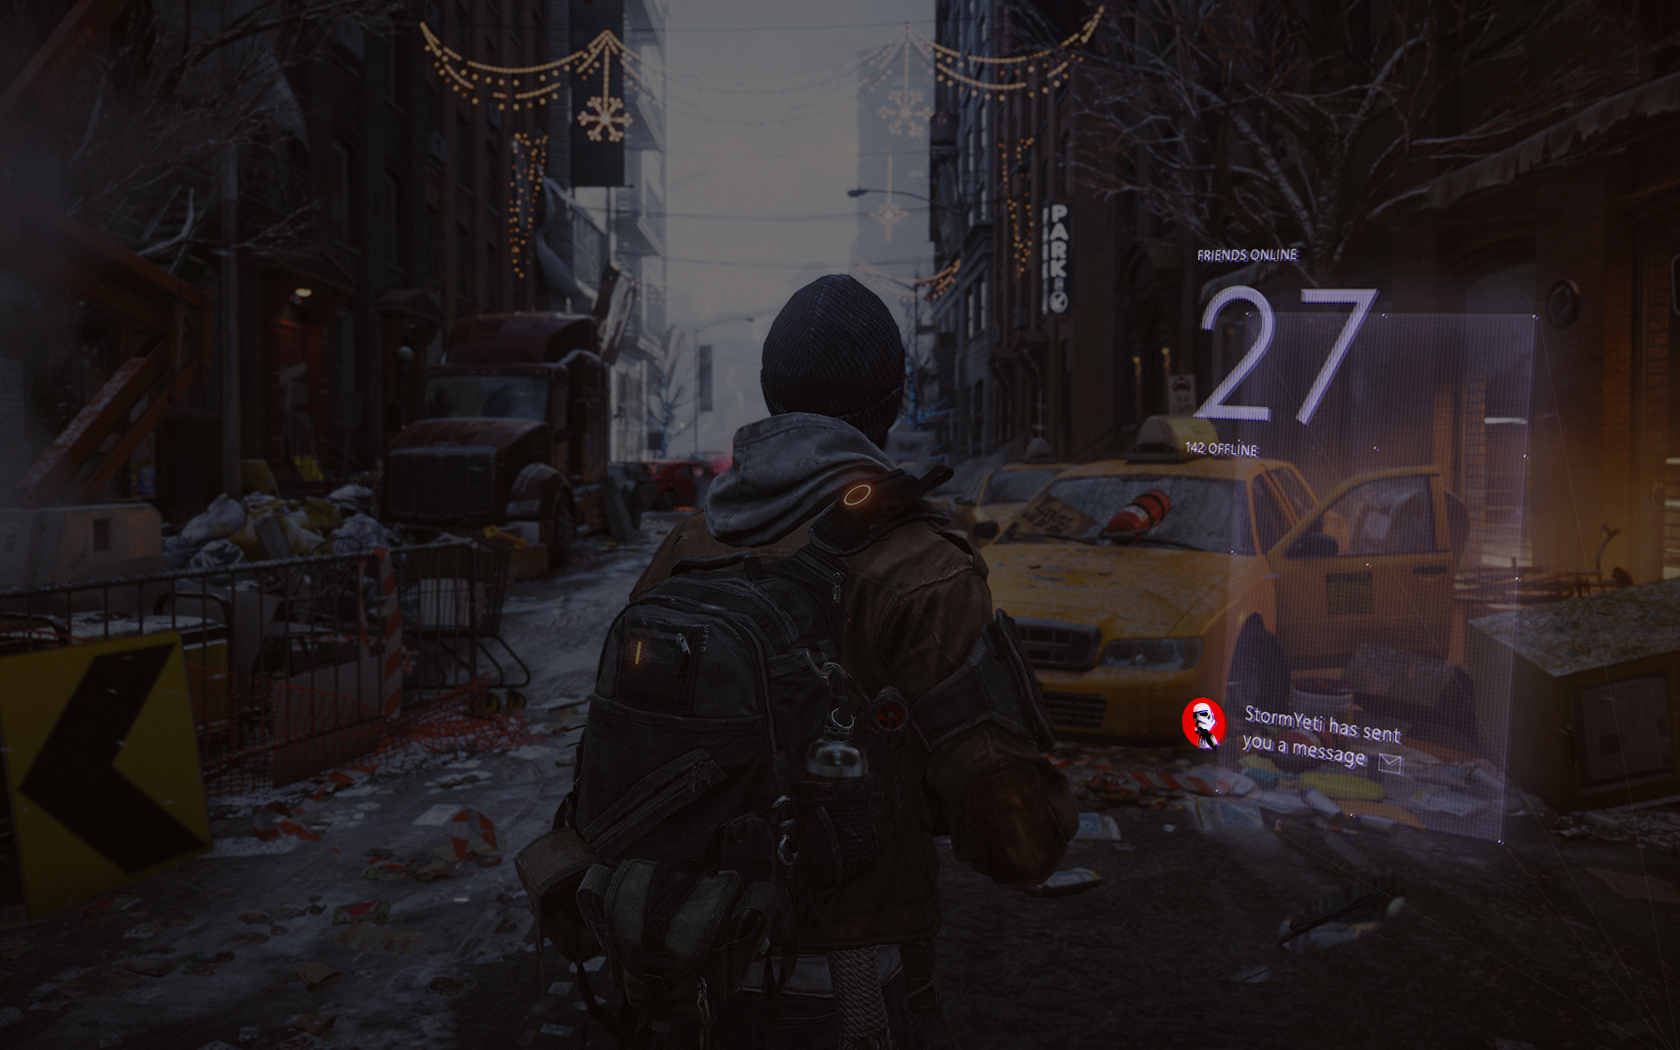 tom-clancys-the-division-21124-1680x1050-Recovered.png